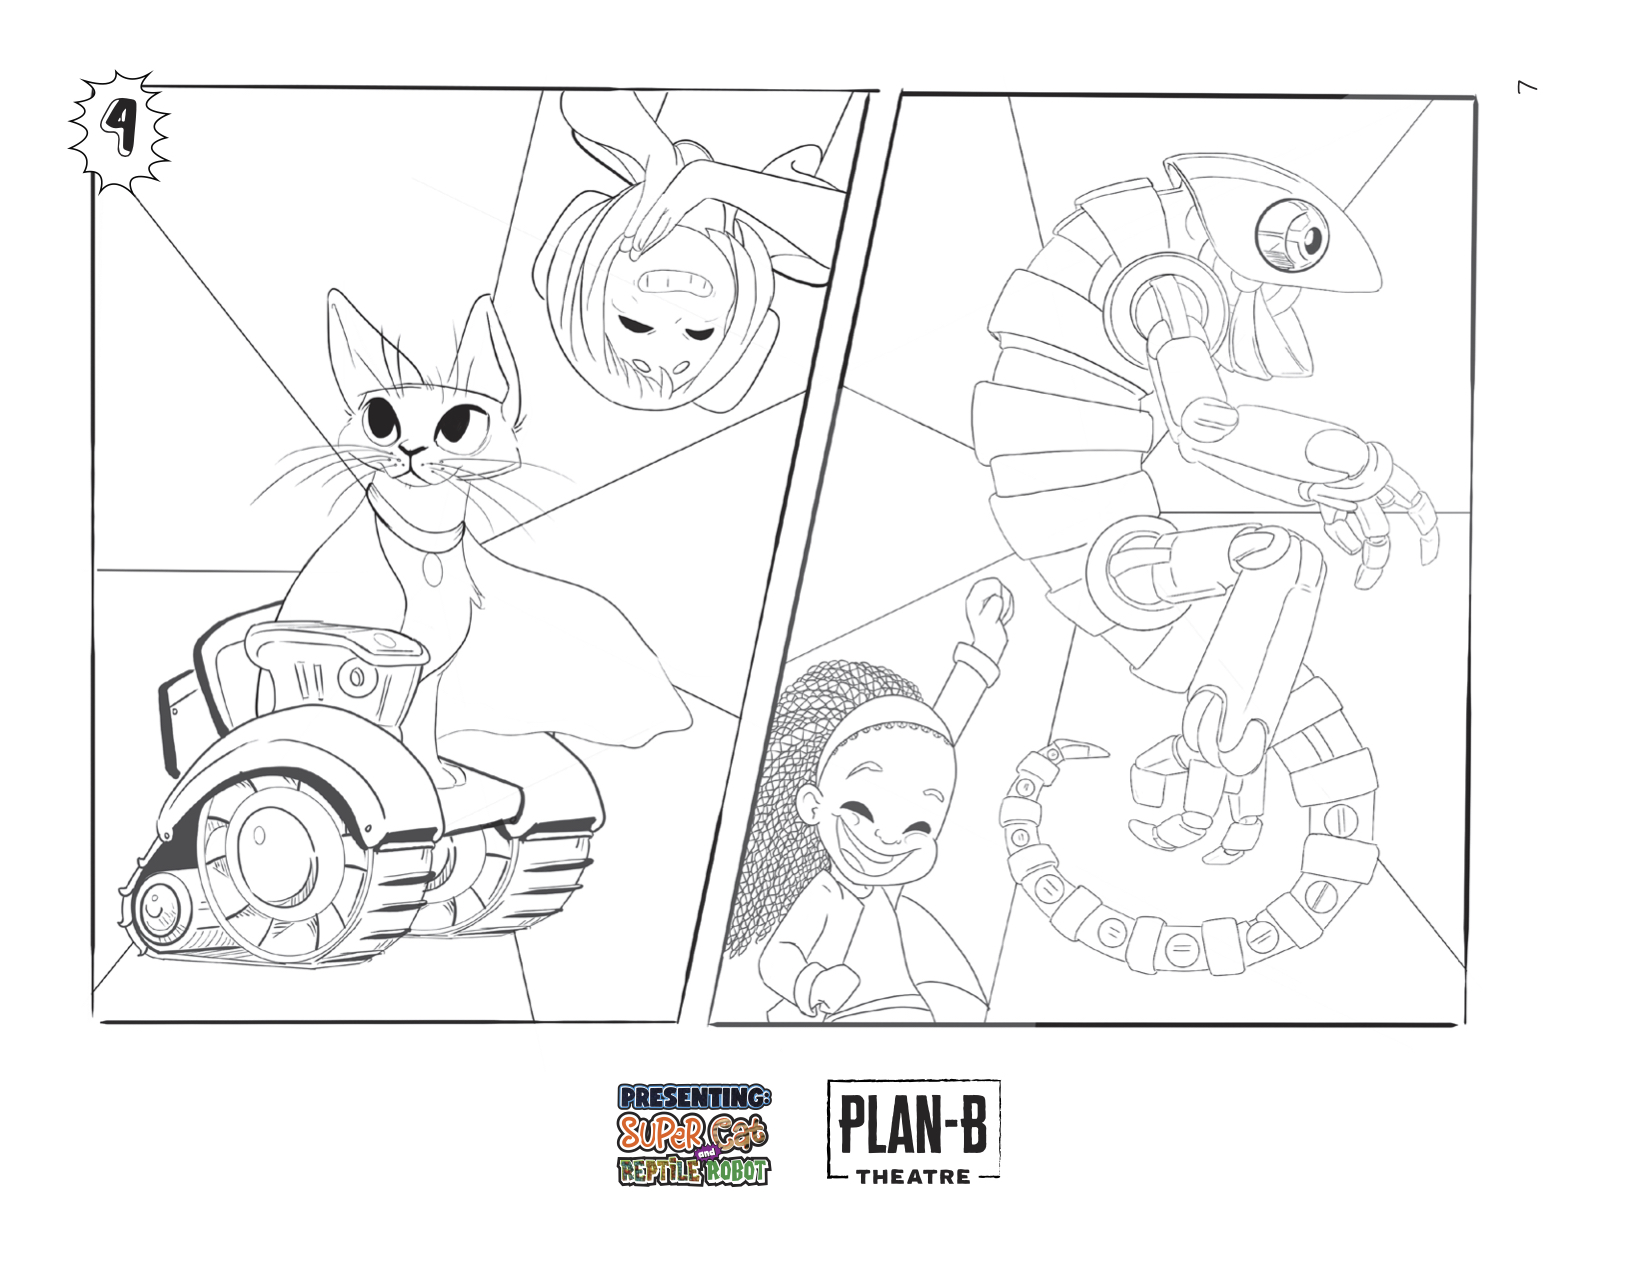 PRESENTING: SUPER CAT & REPTILE ROBOT coloring page with all female cast.